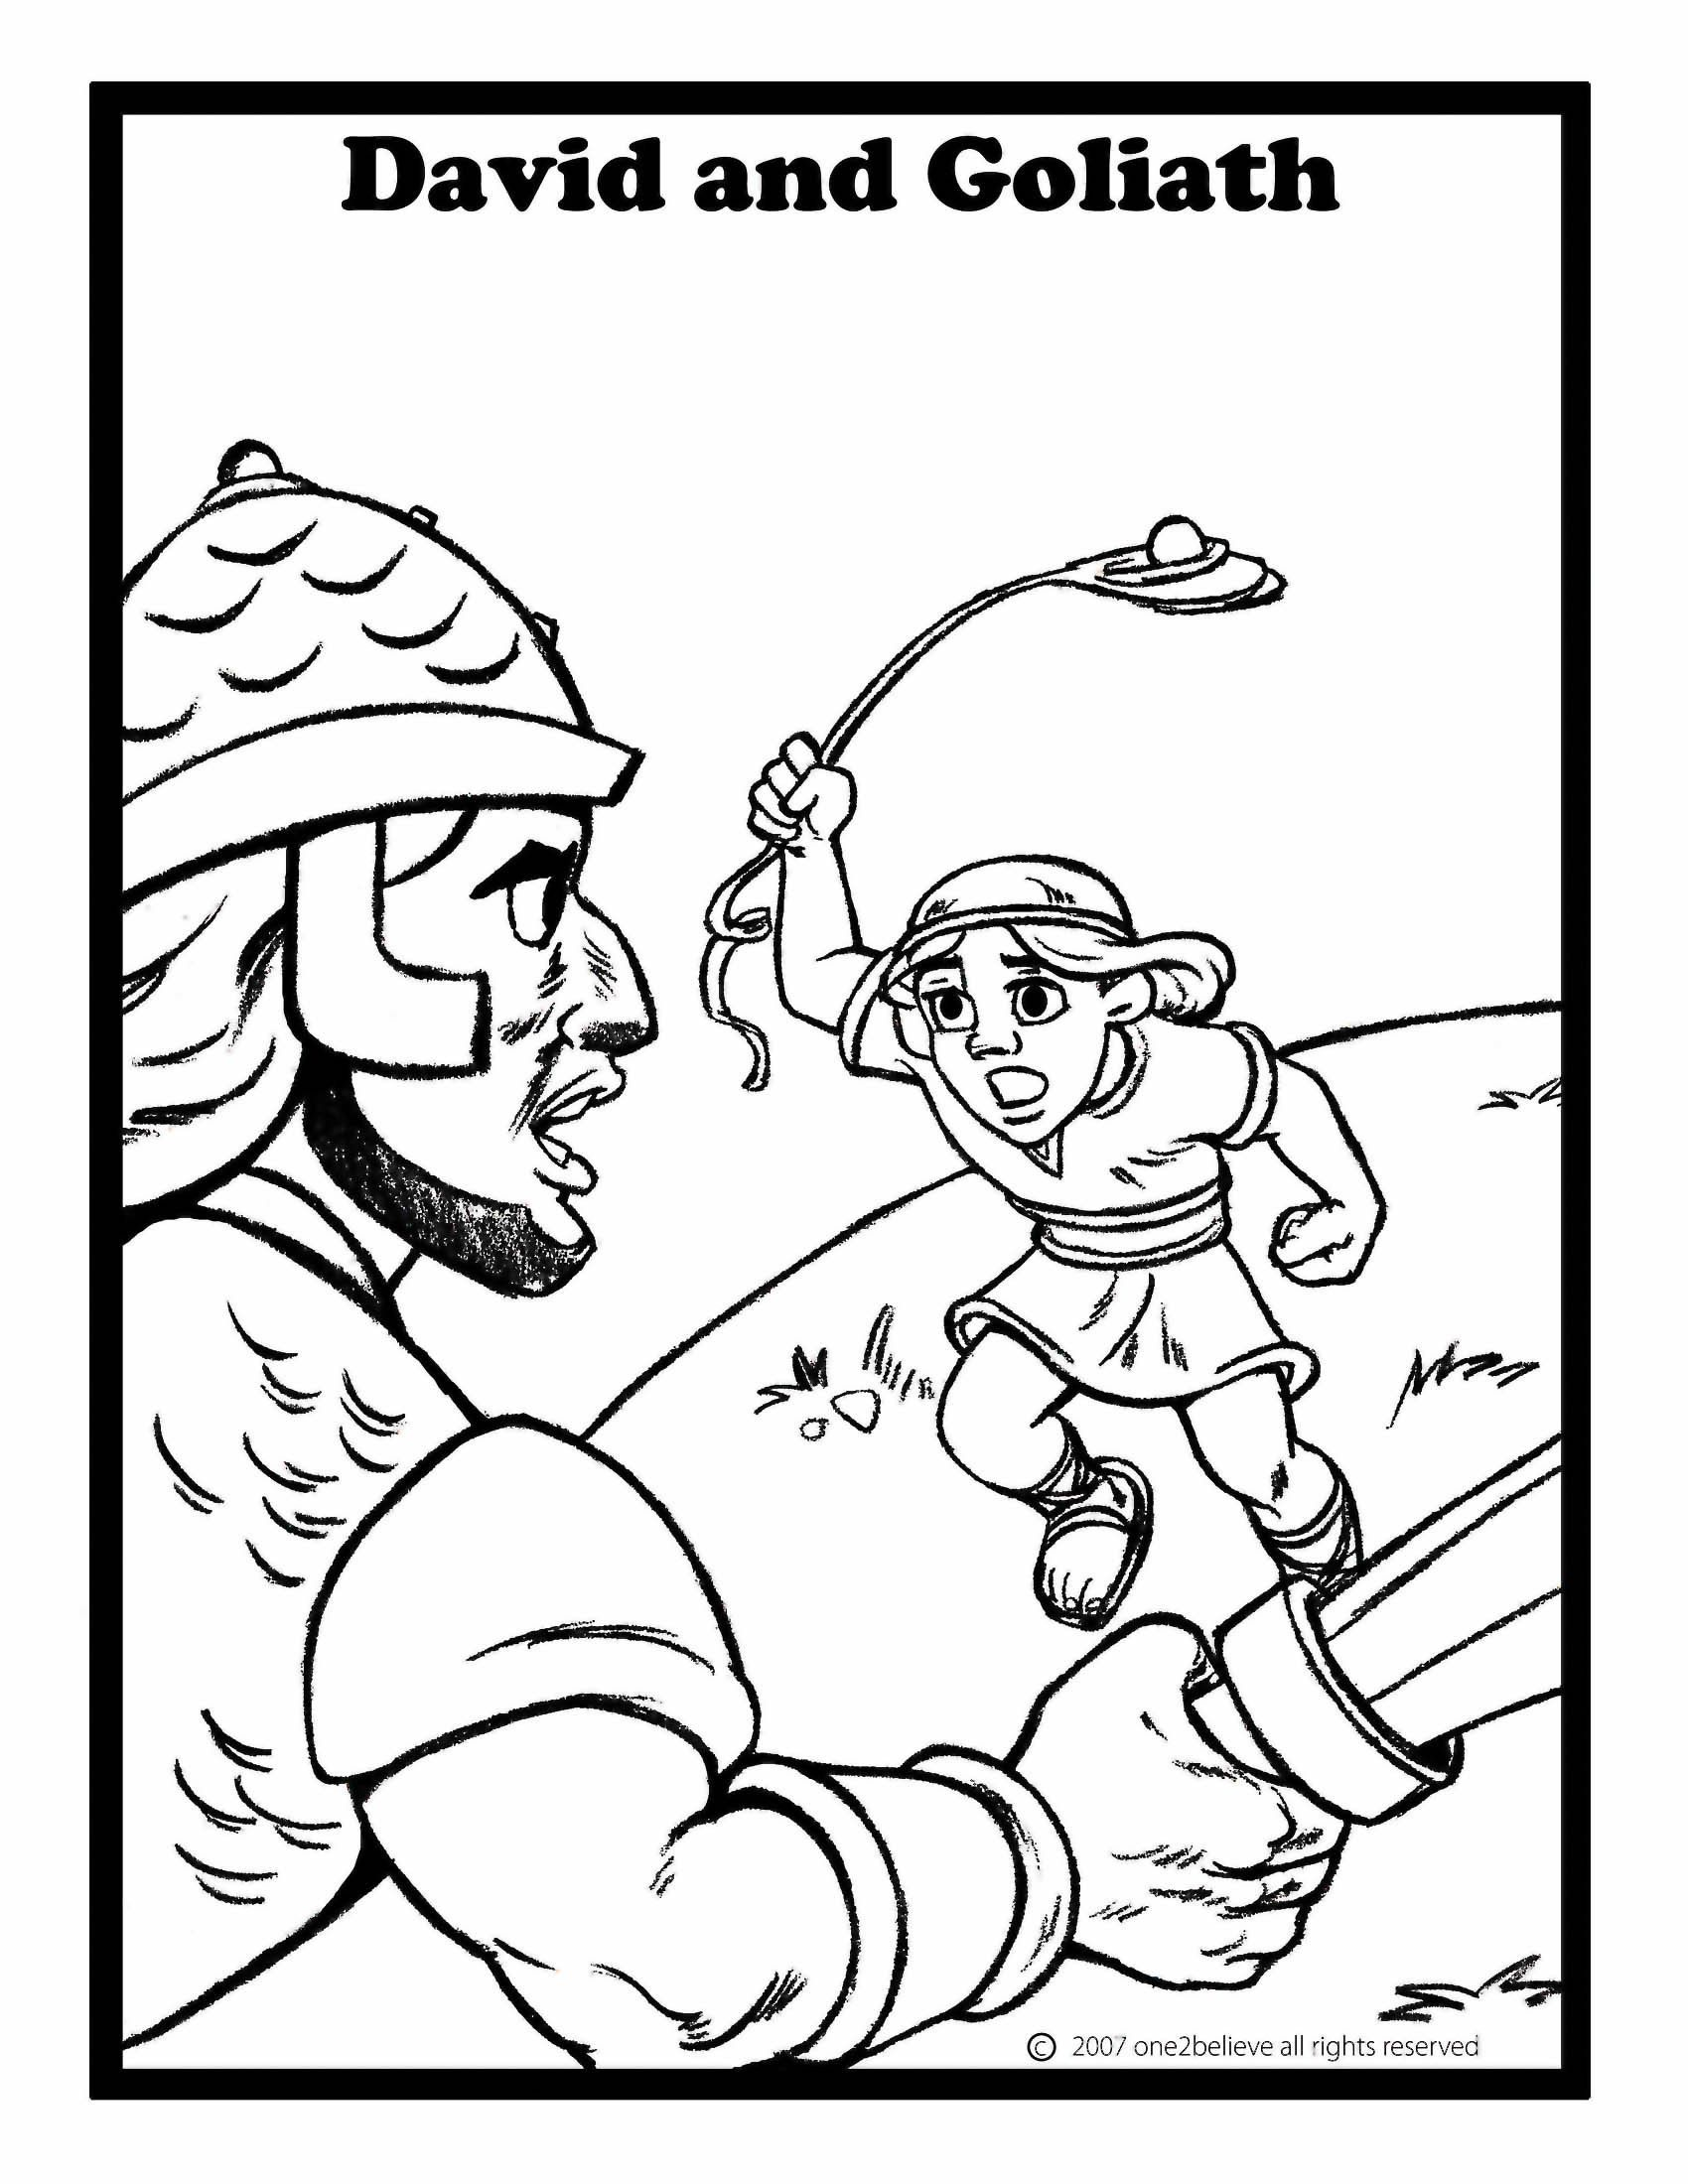 David And Goliath Coloring David And Goliath Activity Showing God Helps Us With Big In 2020 Bible Coloring Pages Sunday School Coloring Pages David And Goliath